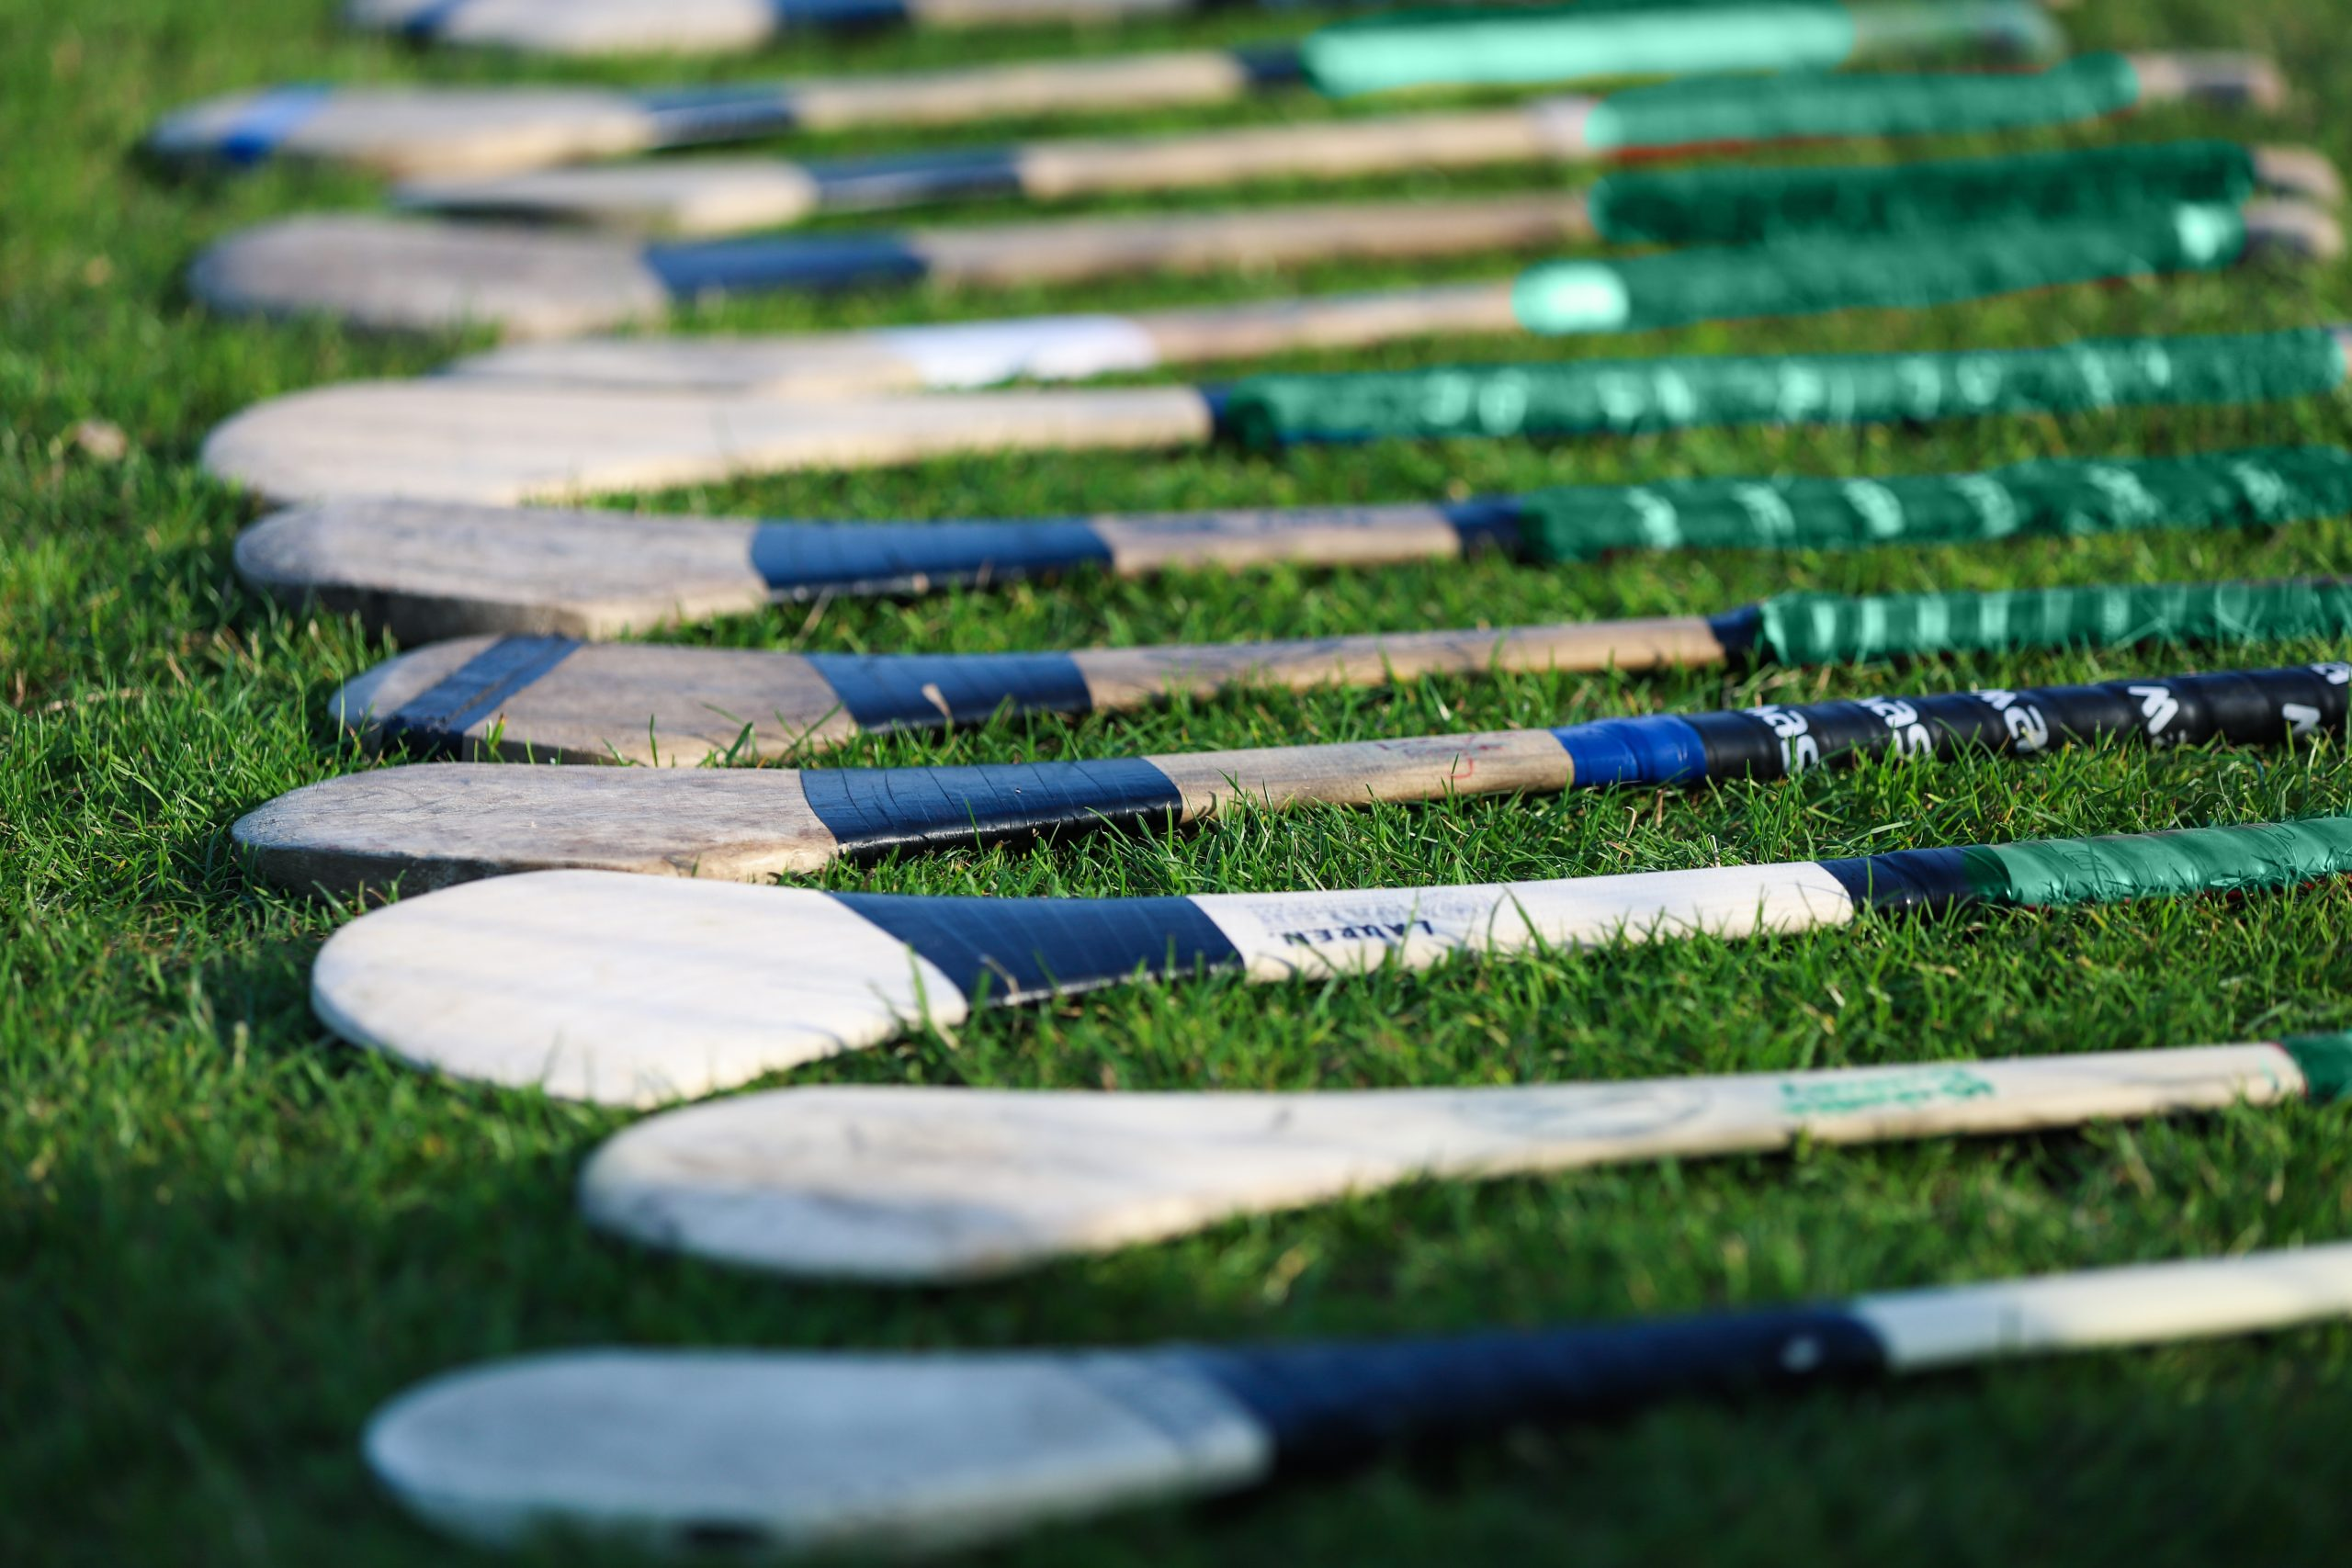 Hurleys on a field